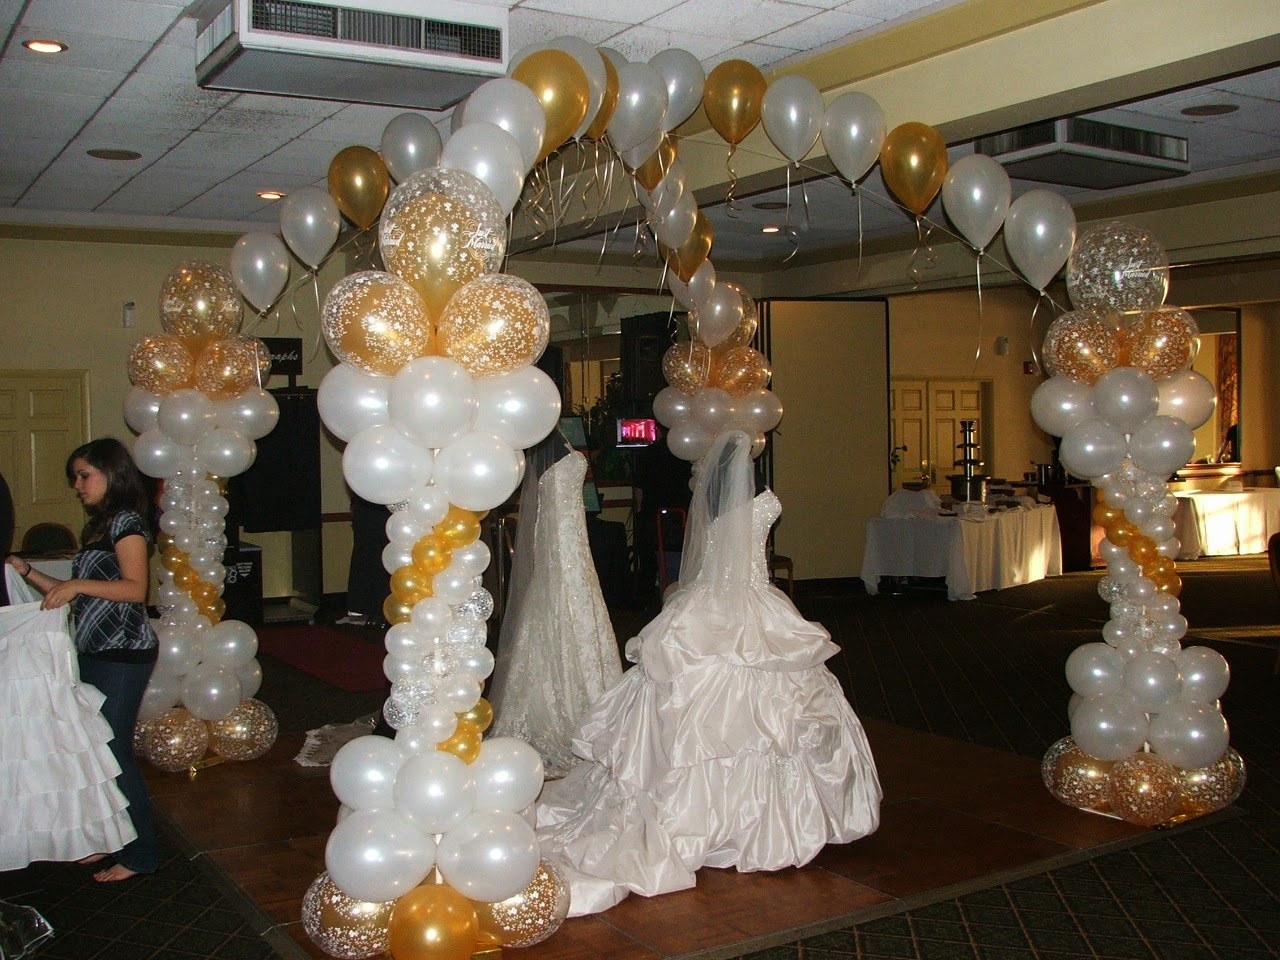 Balloon arch for wedding - Wedding Dance Floor Balloon Arch